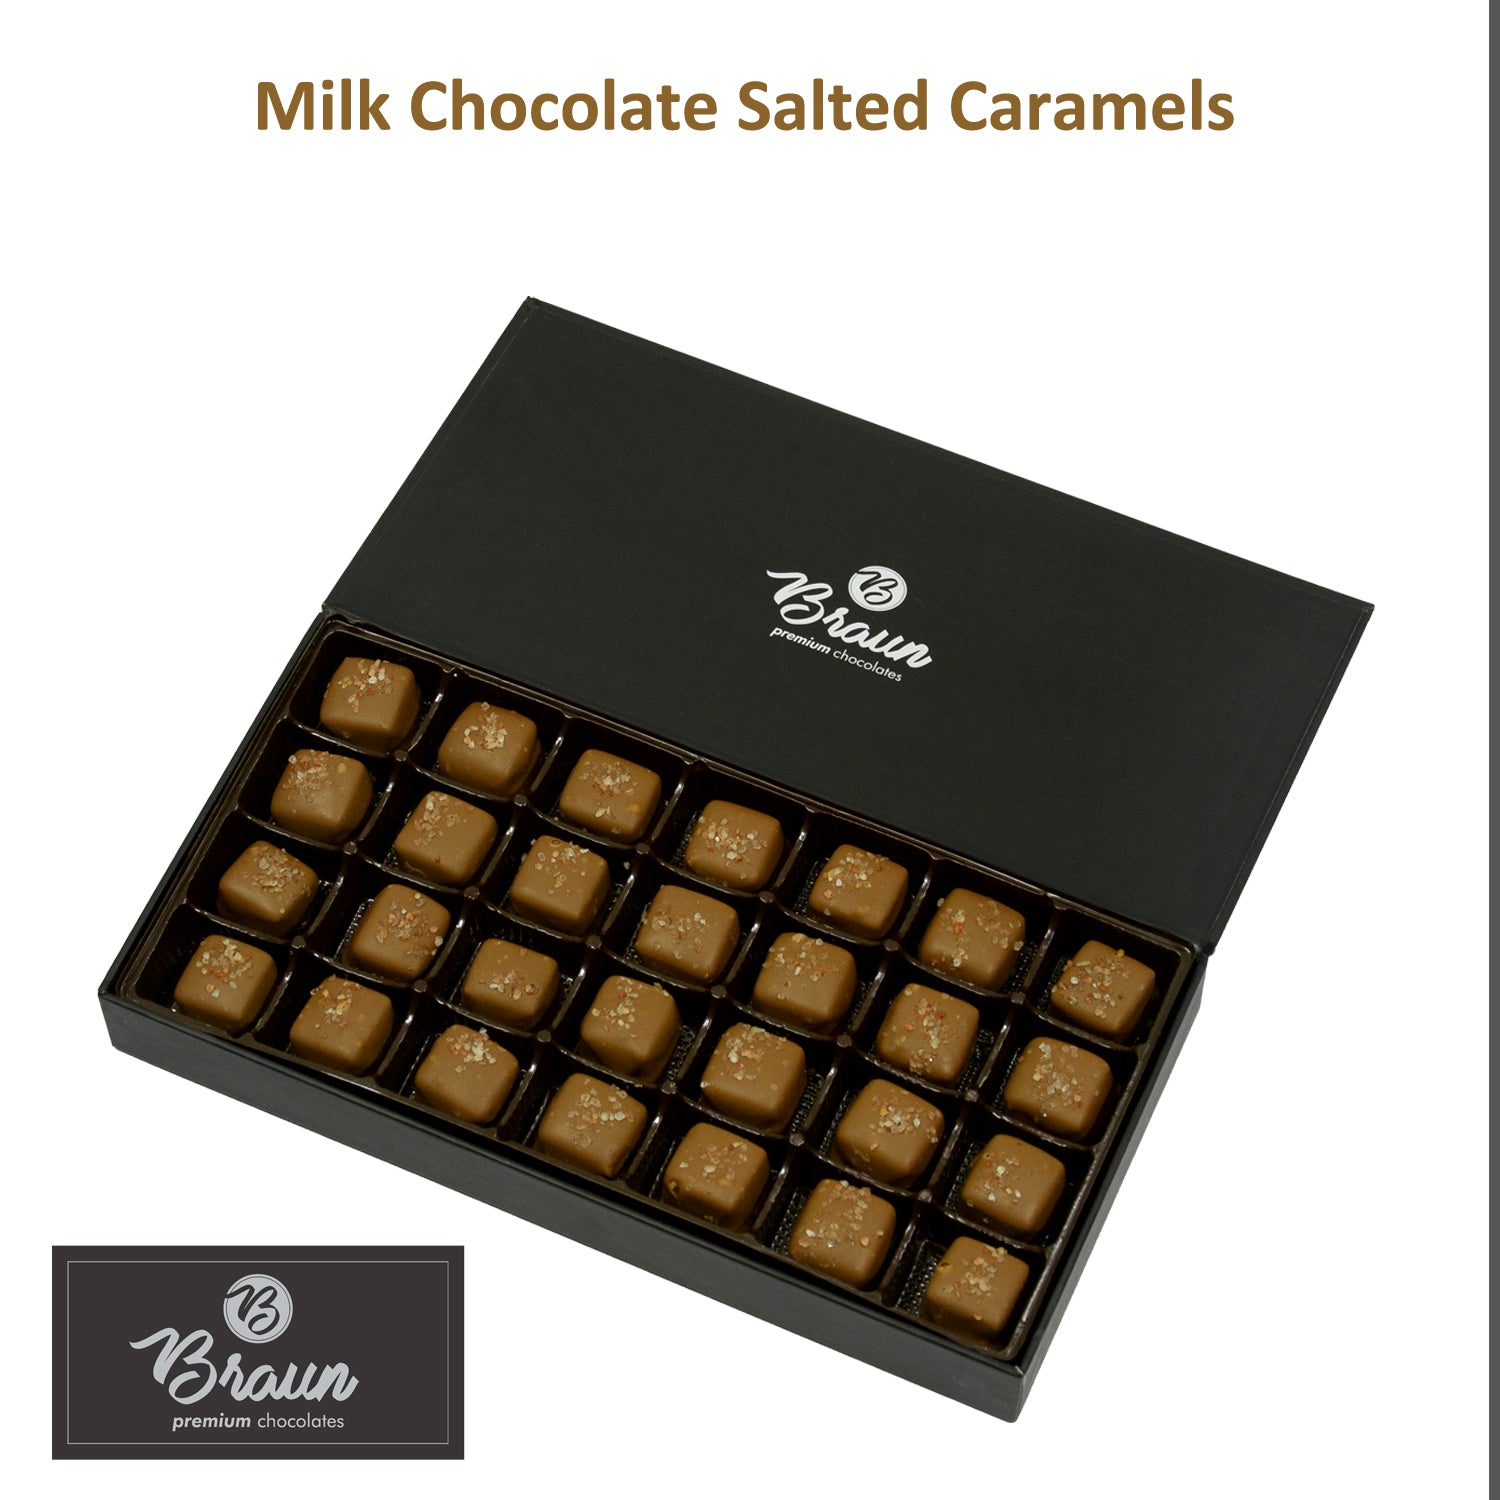 Milk Chocolate Salted Caramels - Keepsake Box